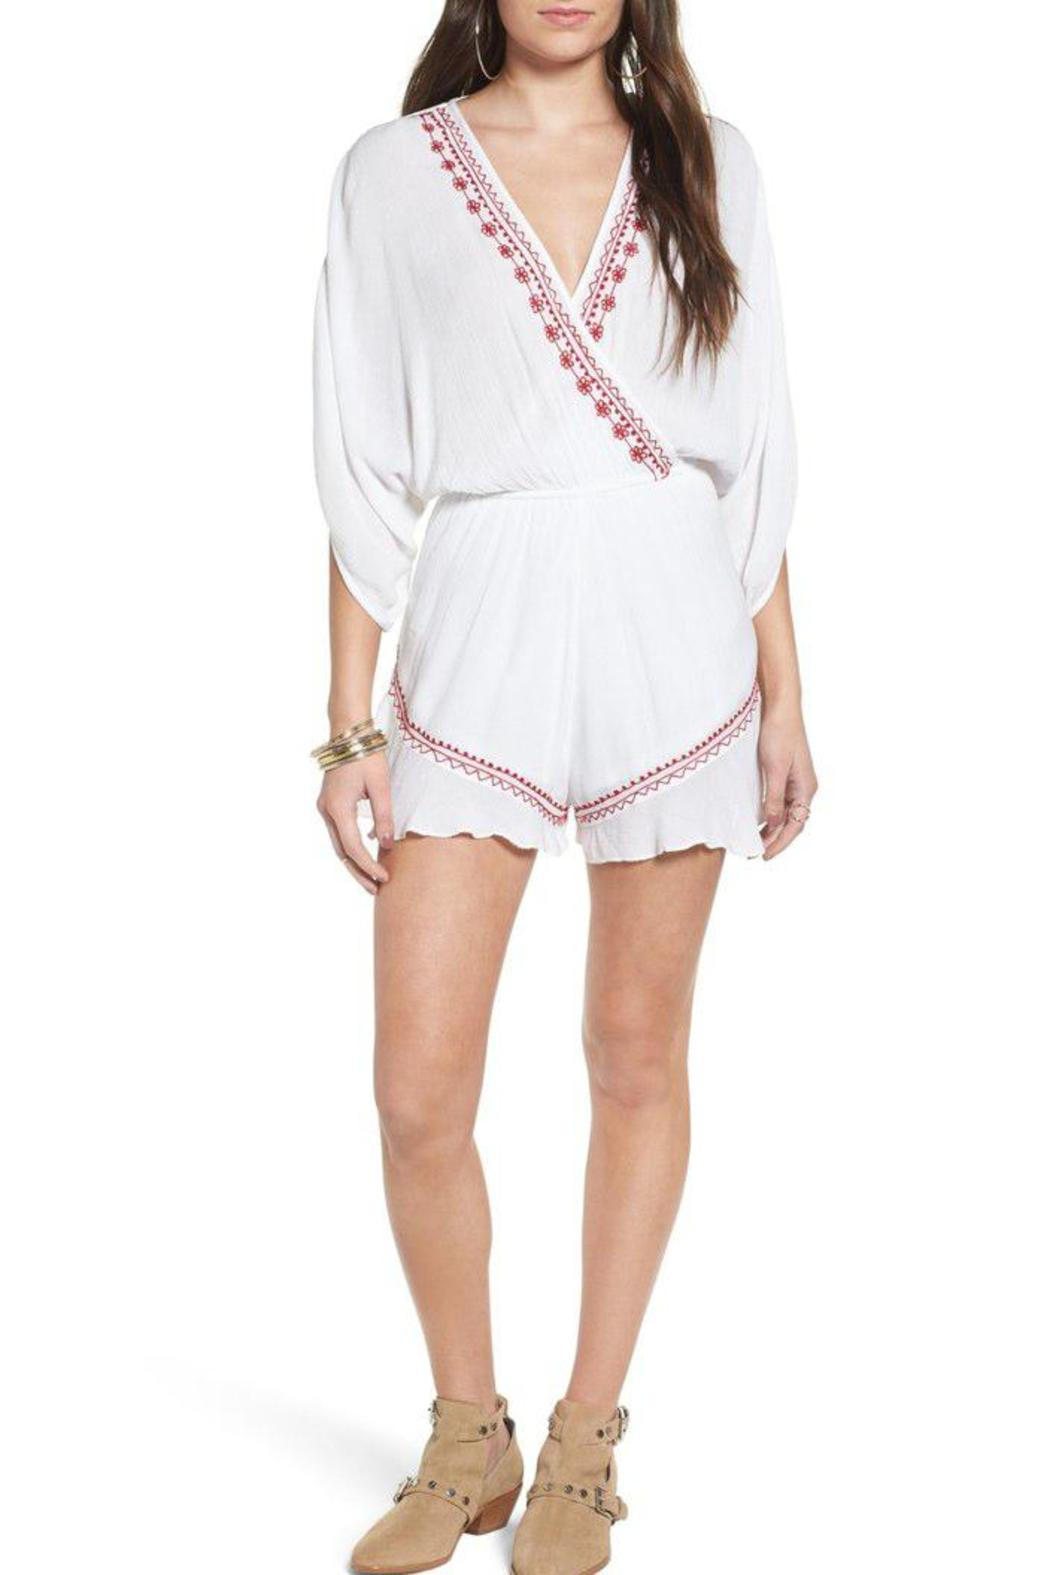 82ee984c29c9 Band Of Gypsies Moroccan Embroidered Romper from California by ...